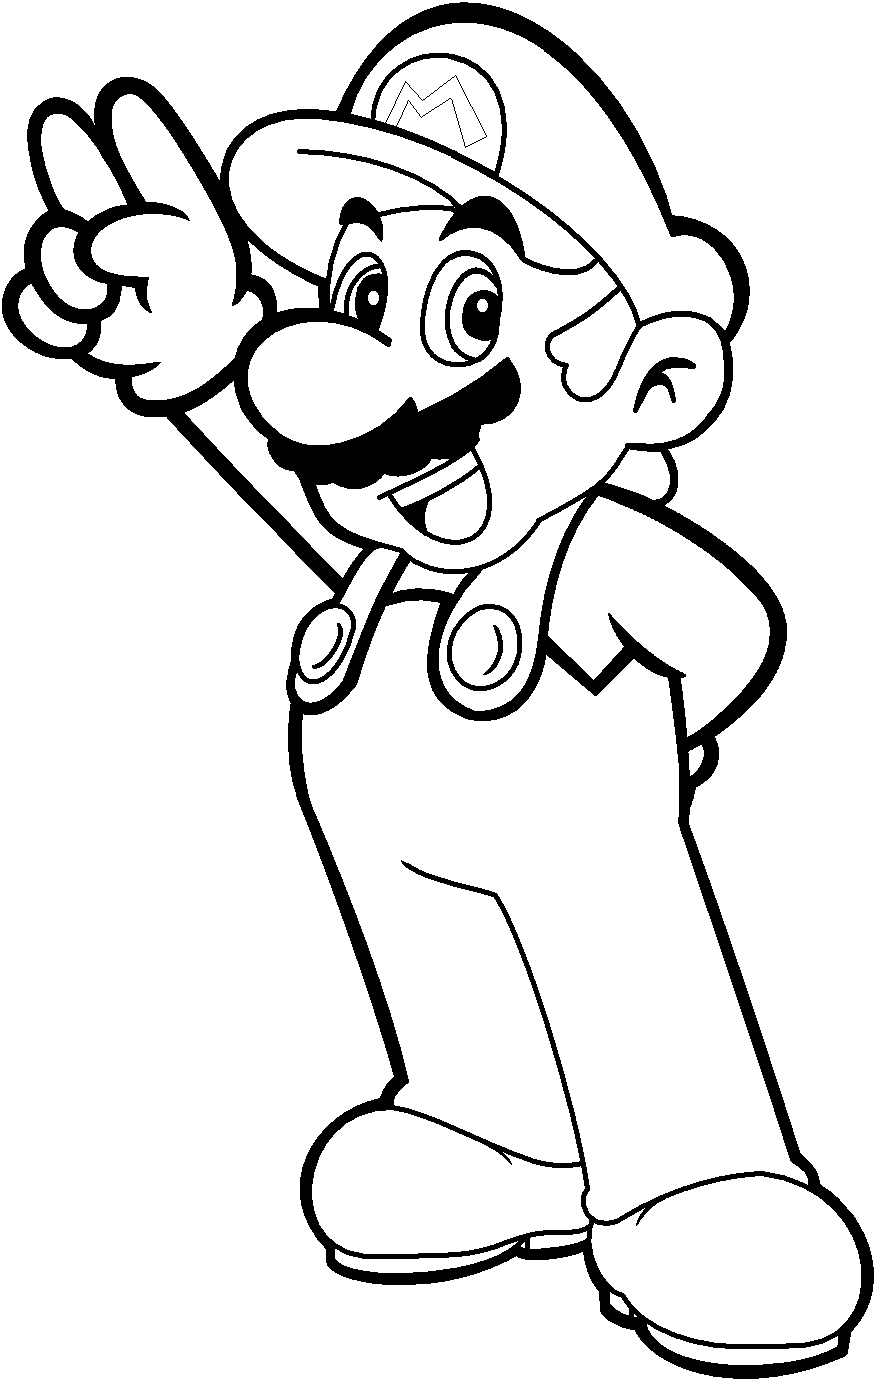 mario color pages new super mario coloring pages download and print for free mario pages color